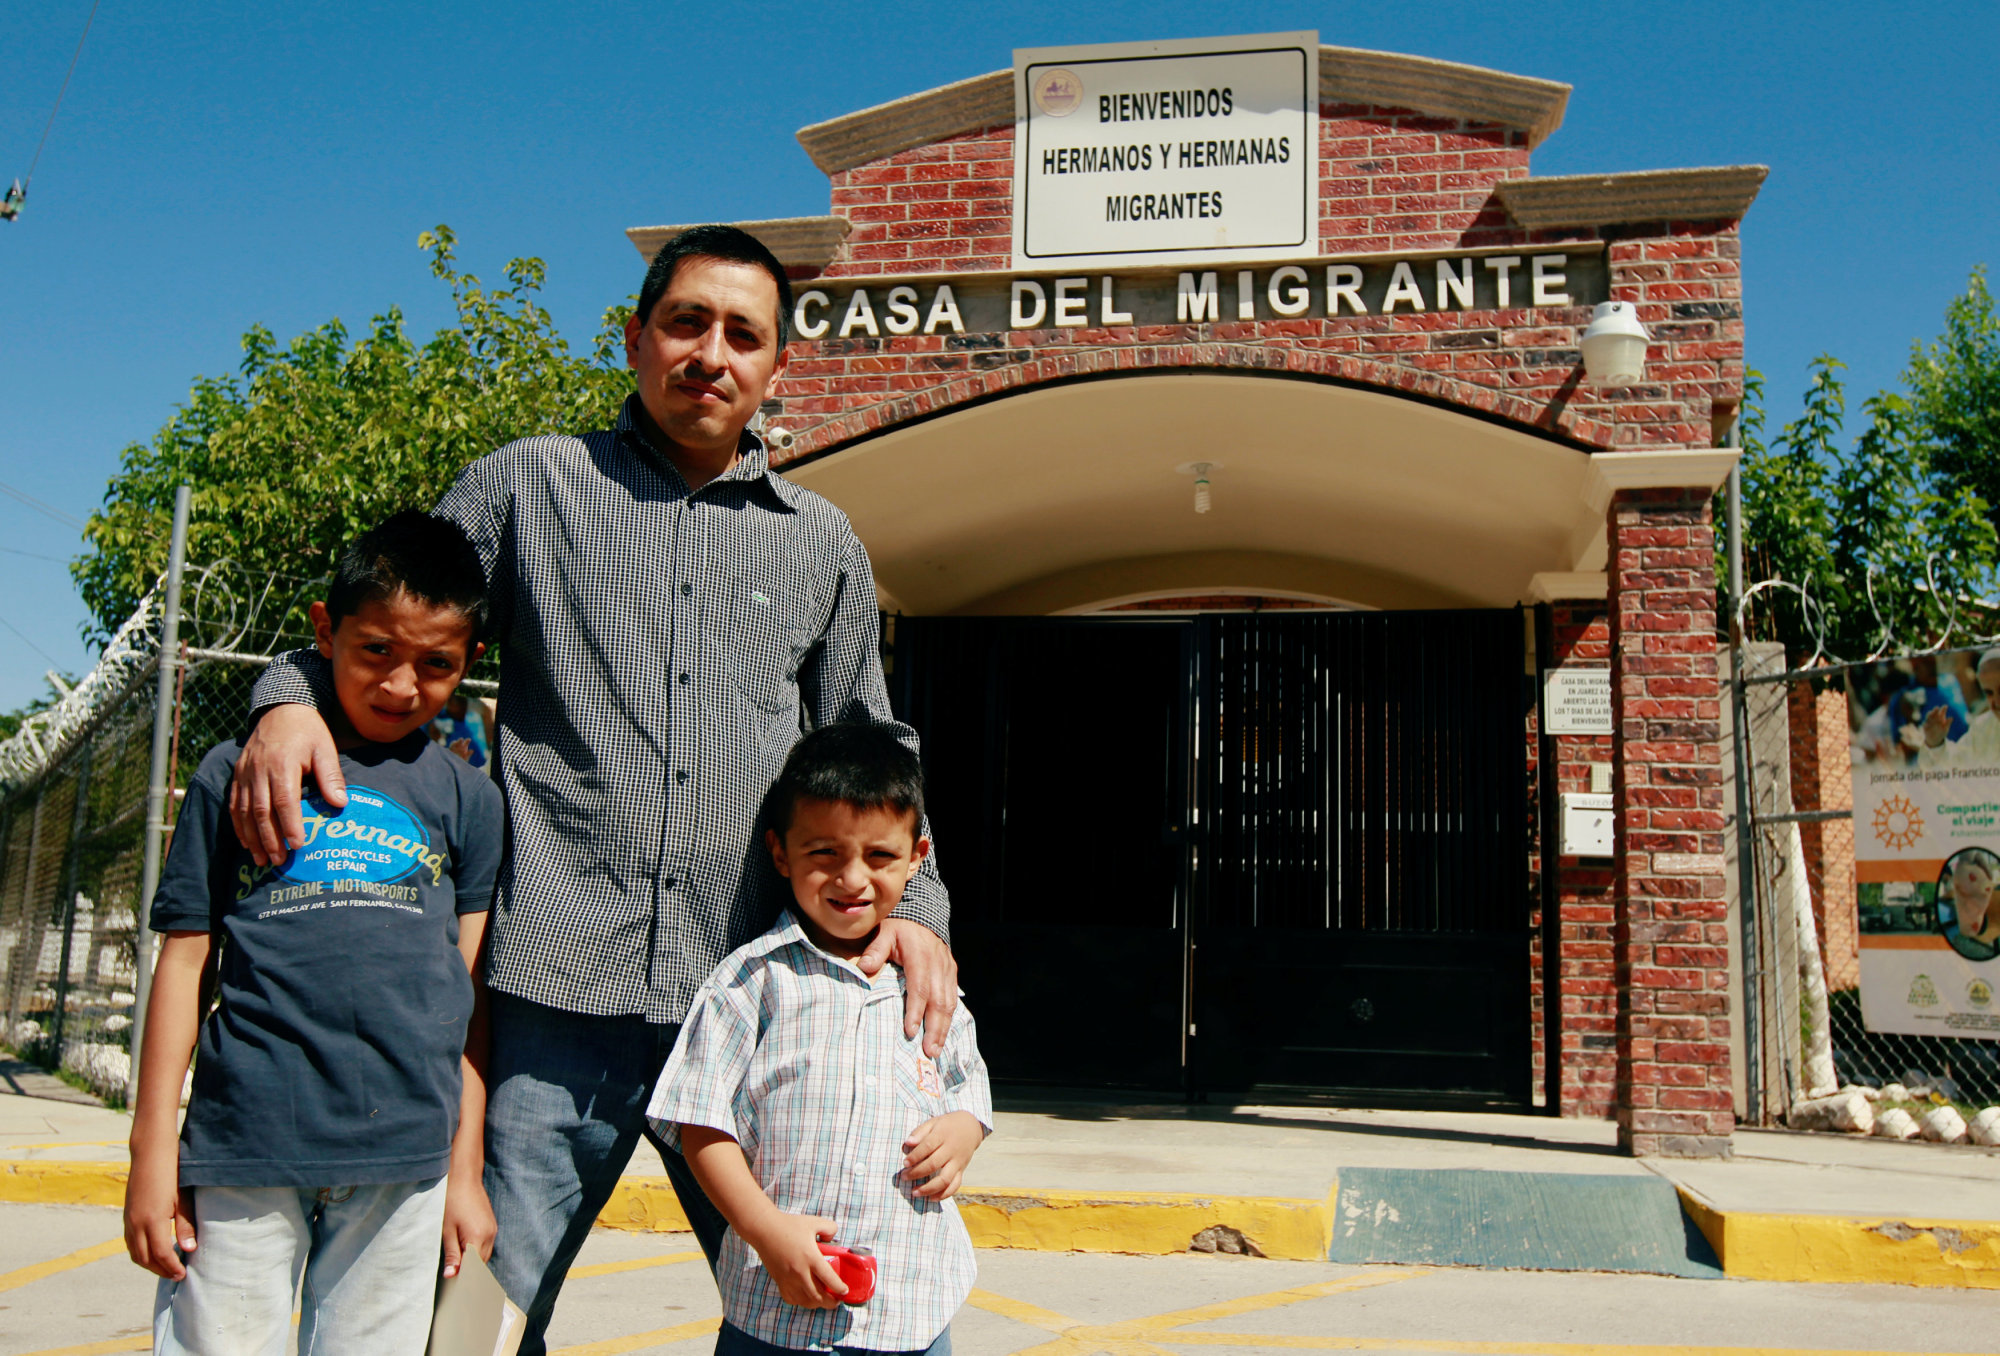 Salvadoran migrant Epigmenio Centeno and his sons, 9-year-old Axel Jaret and 3-year-old Steven Atonay, pose outside the shelter House of the Migrant in Ciudad Juarez, Mexico, on Tuesday after Epigmenio decided to stay with his children in Mexico due to U.S. President Donald Trump's child separation policy. | REUTERS